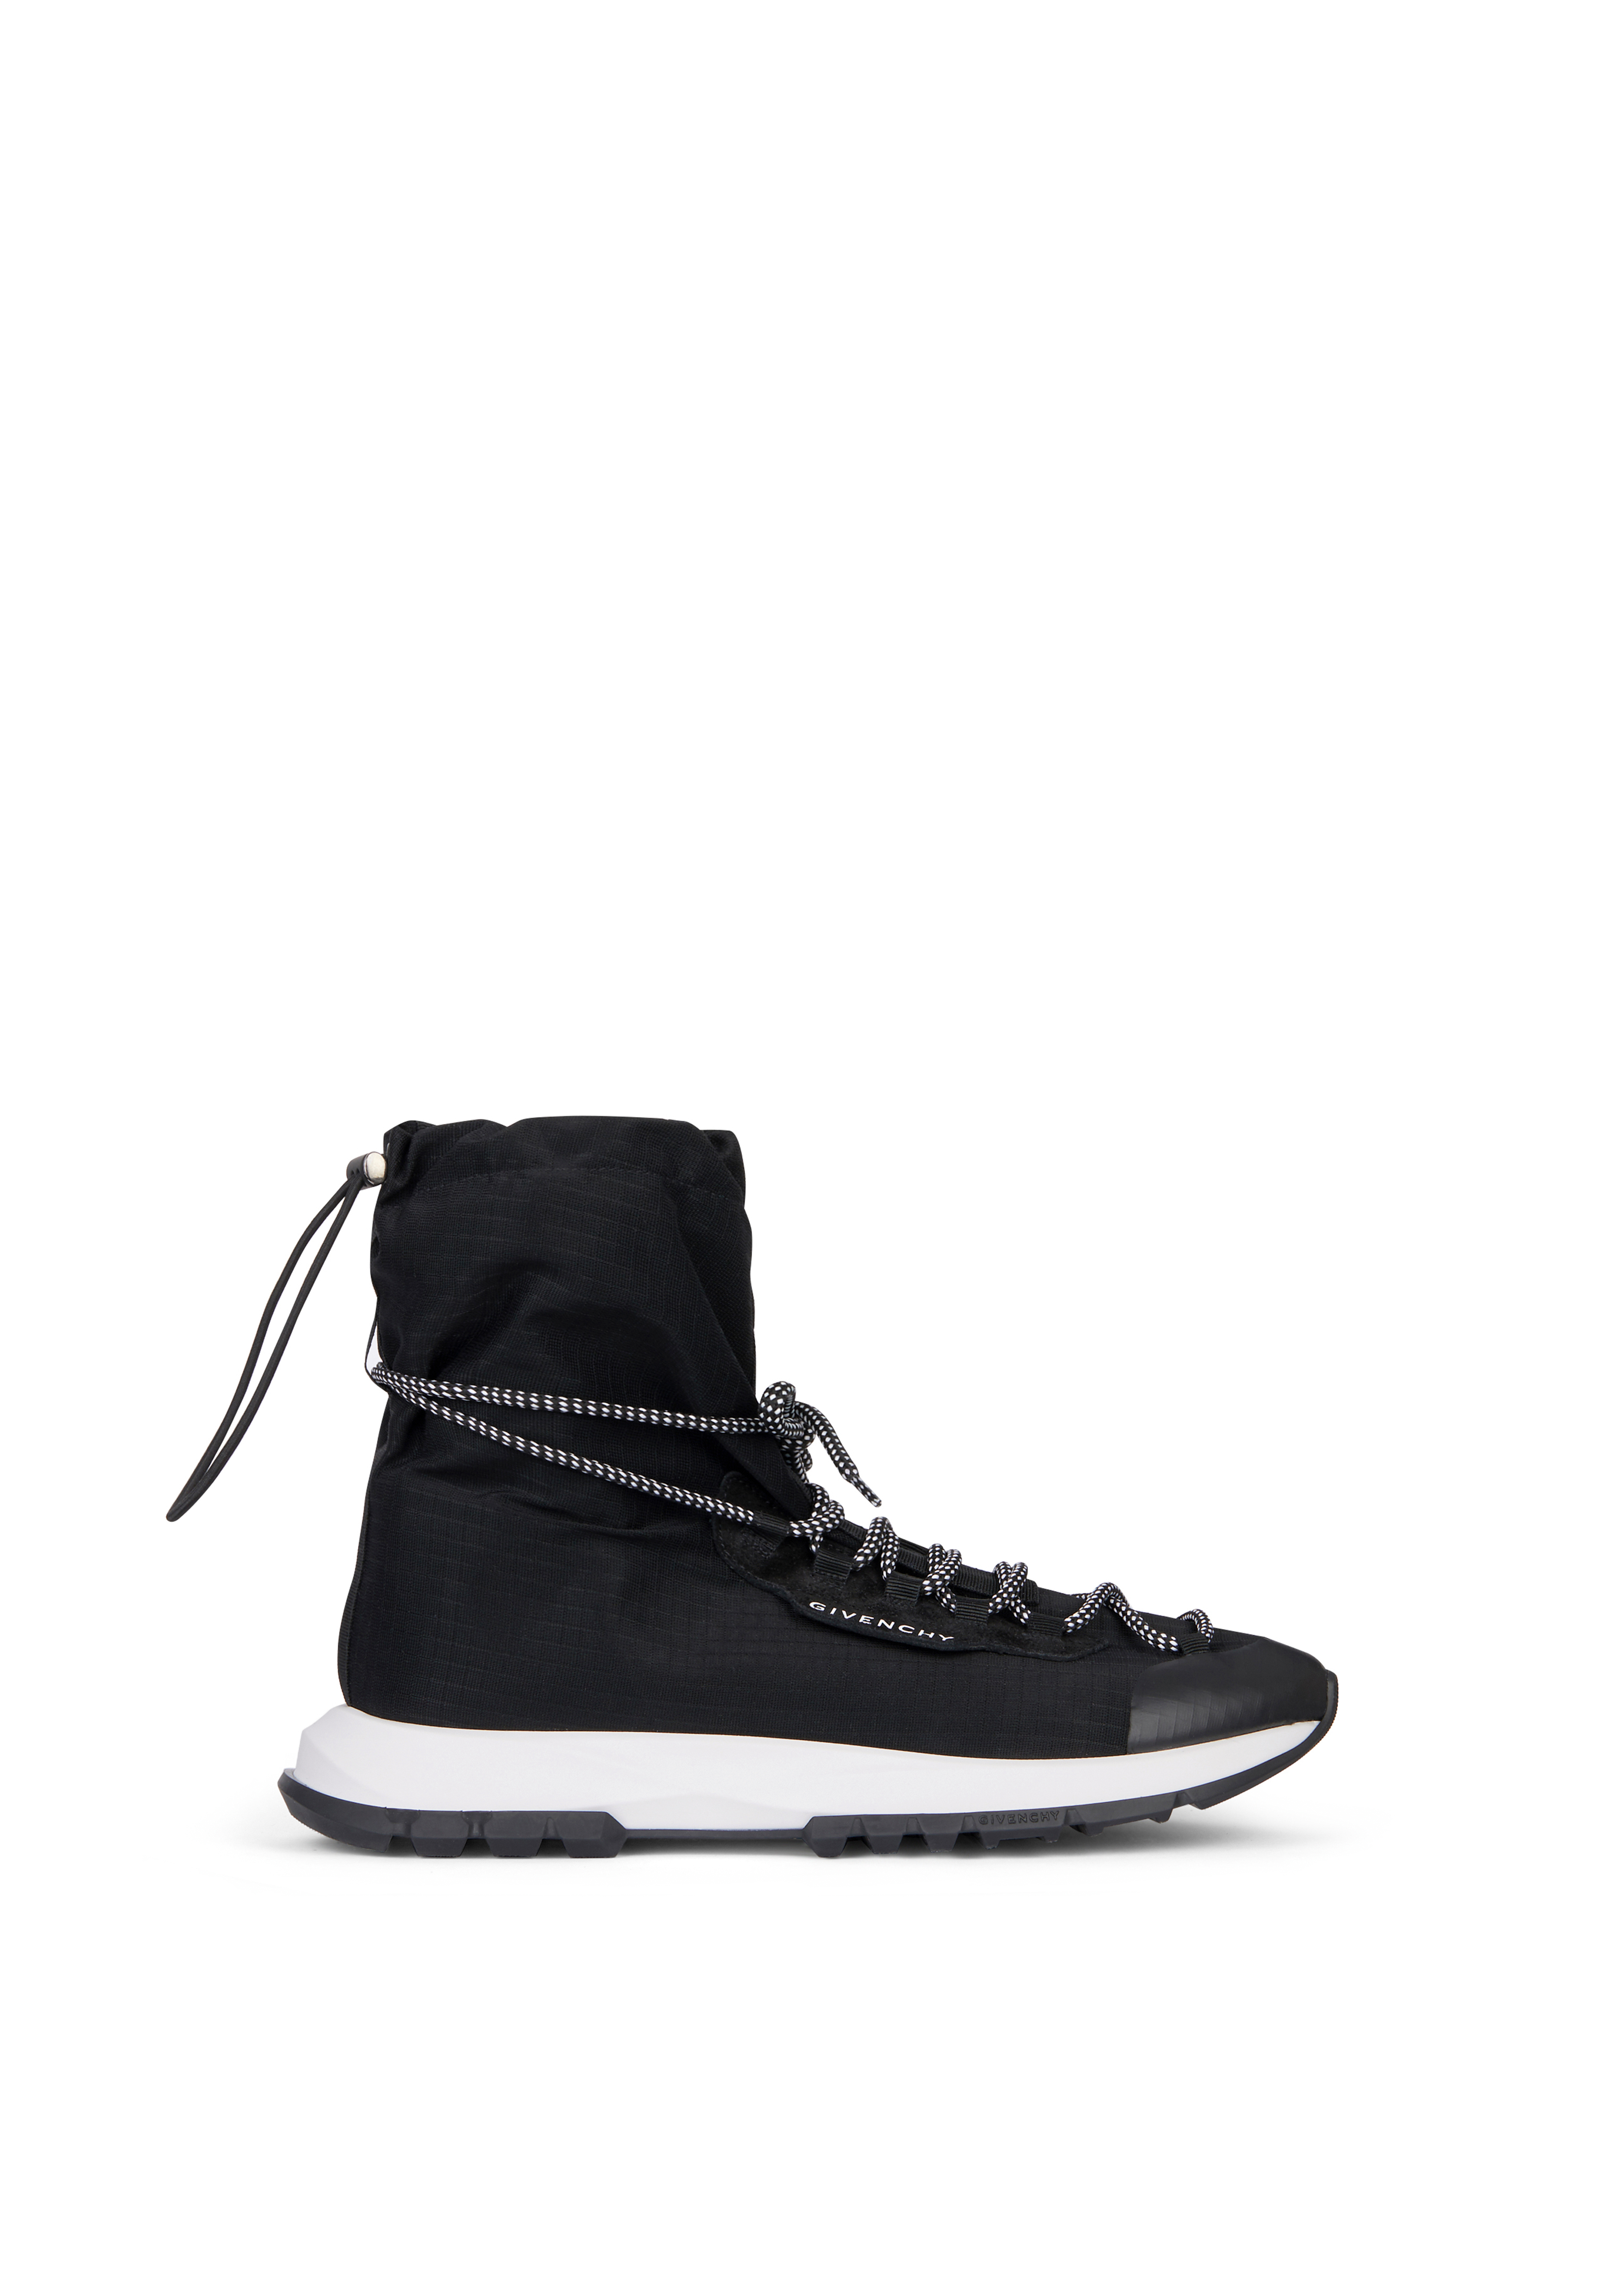 Givenchy SS20 SpectreSneakers_6